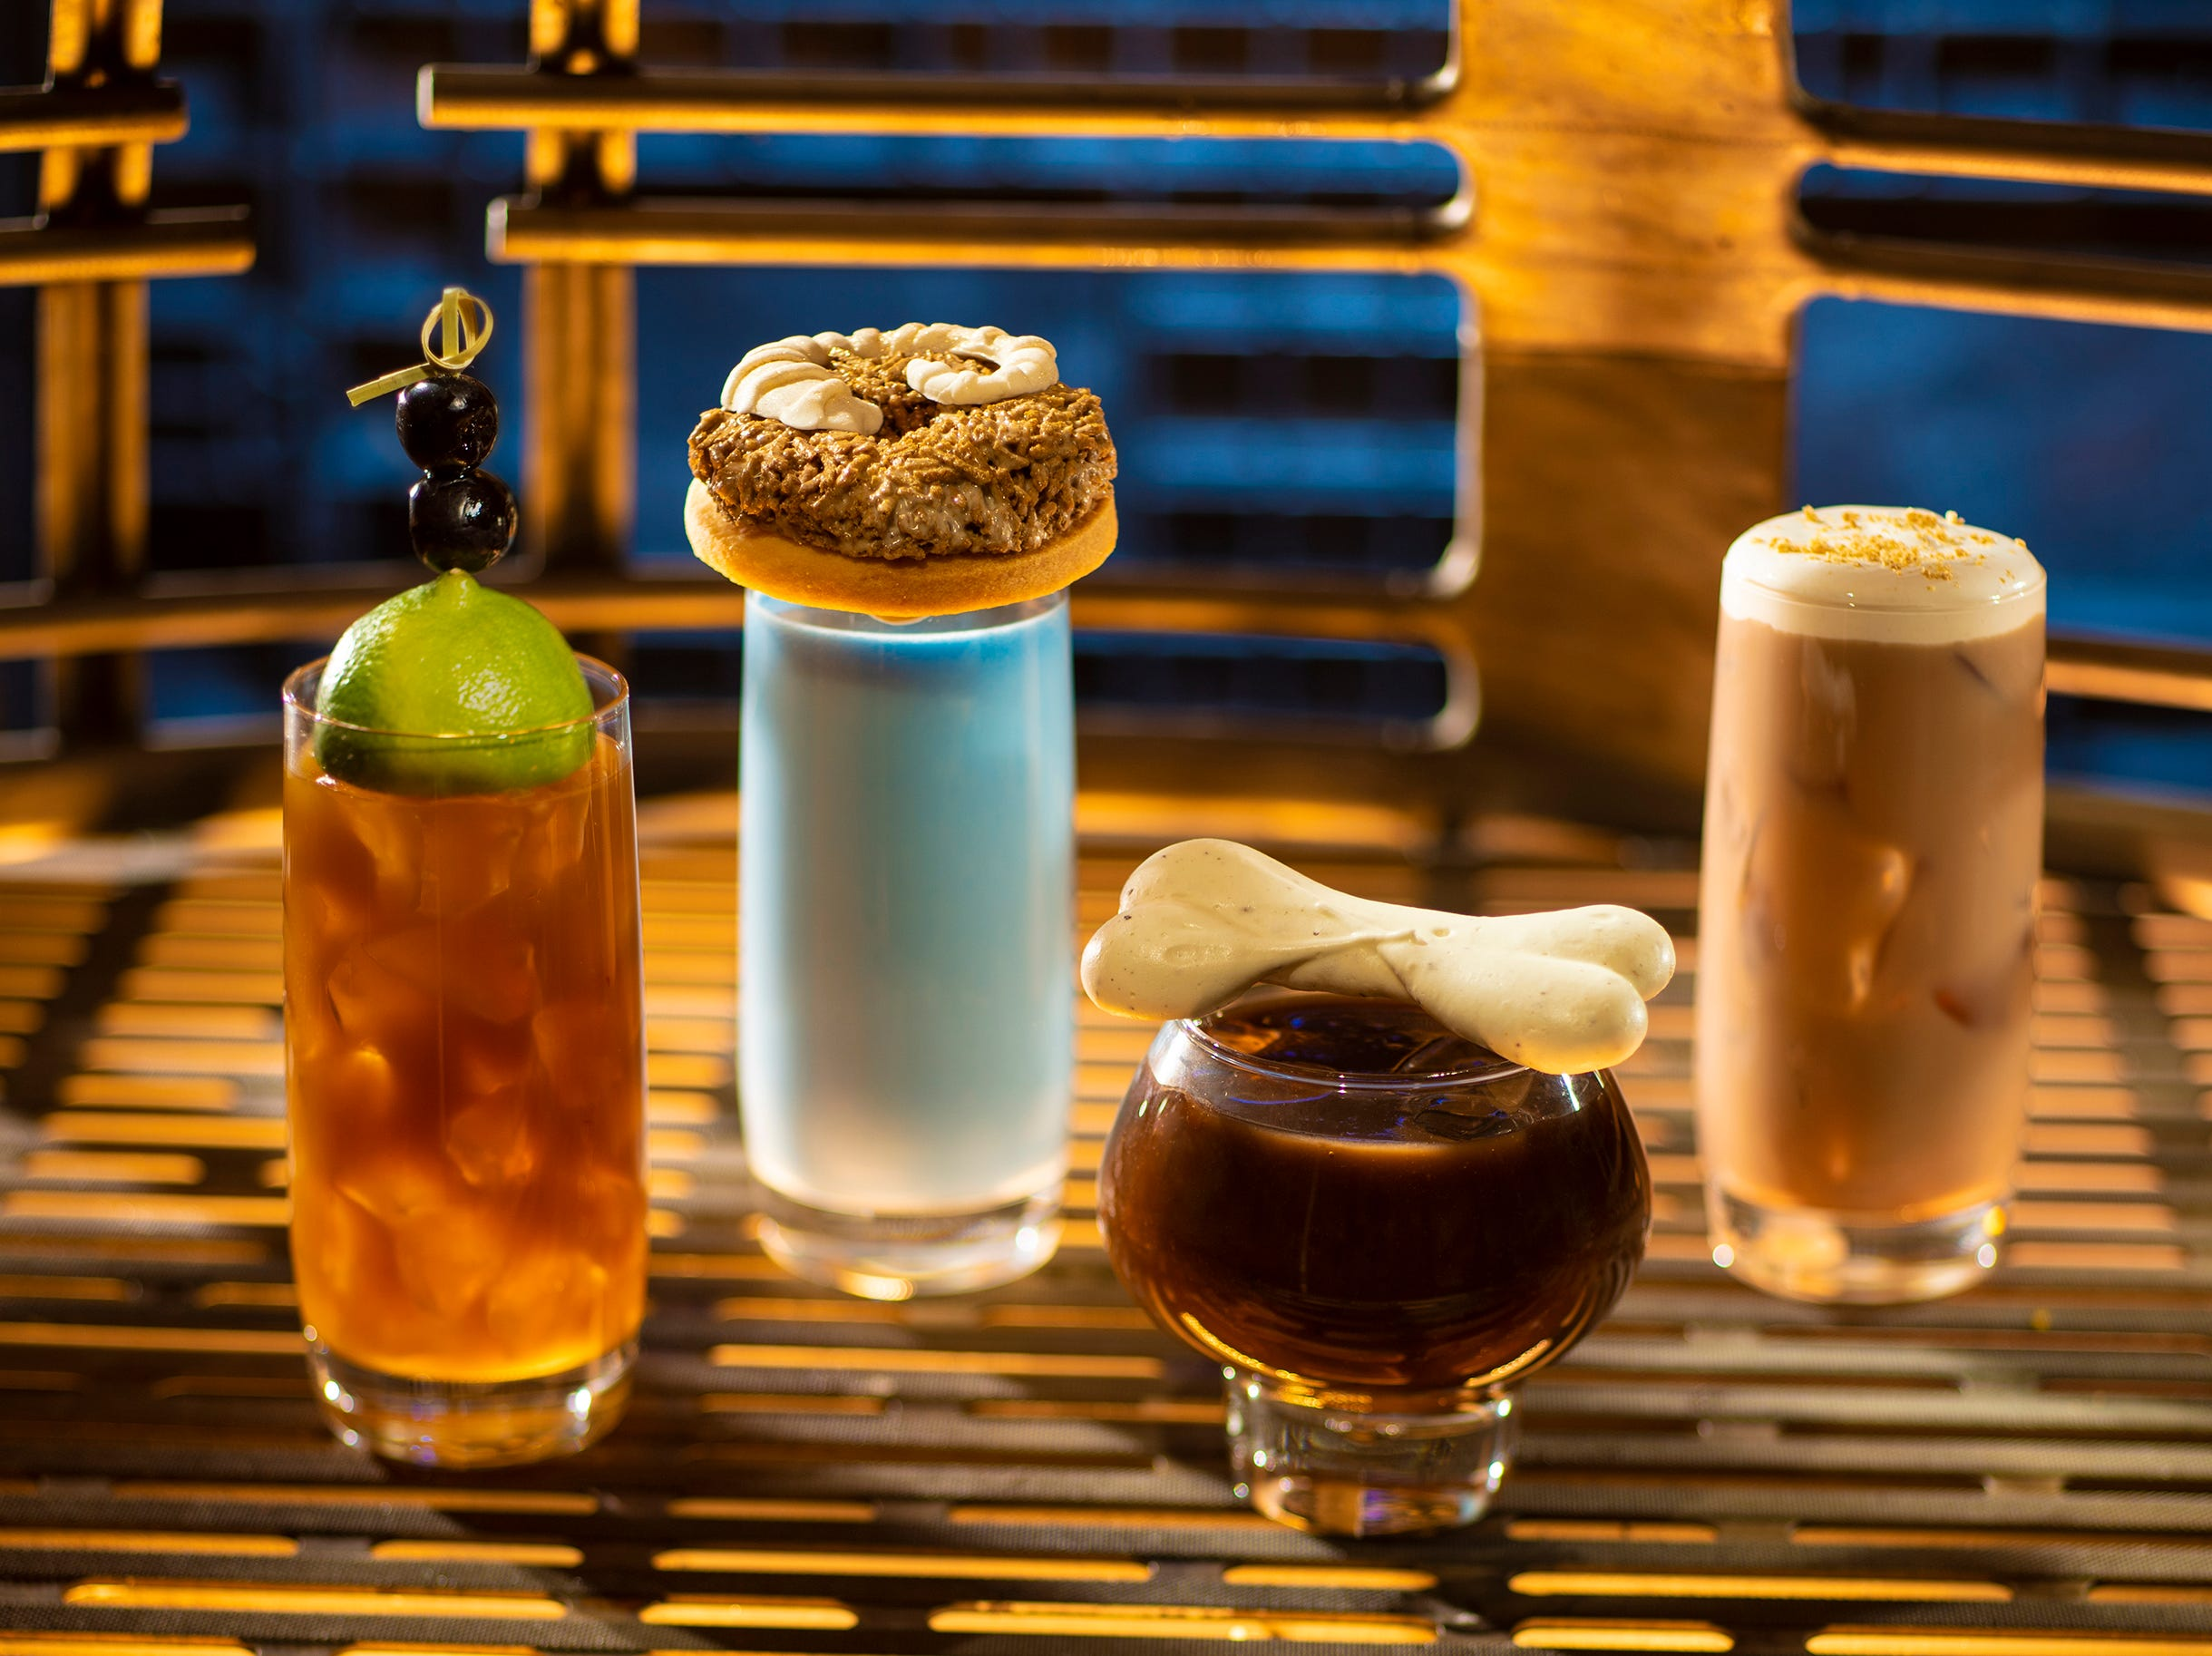 From left to right: Moogan Tea, Blue Bantha, Bloody Rancor (contains alcohol) and the Black Spire Brew can be found at Oga's Cantina inside Star Wars: Galaxy's Edge.